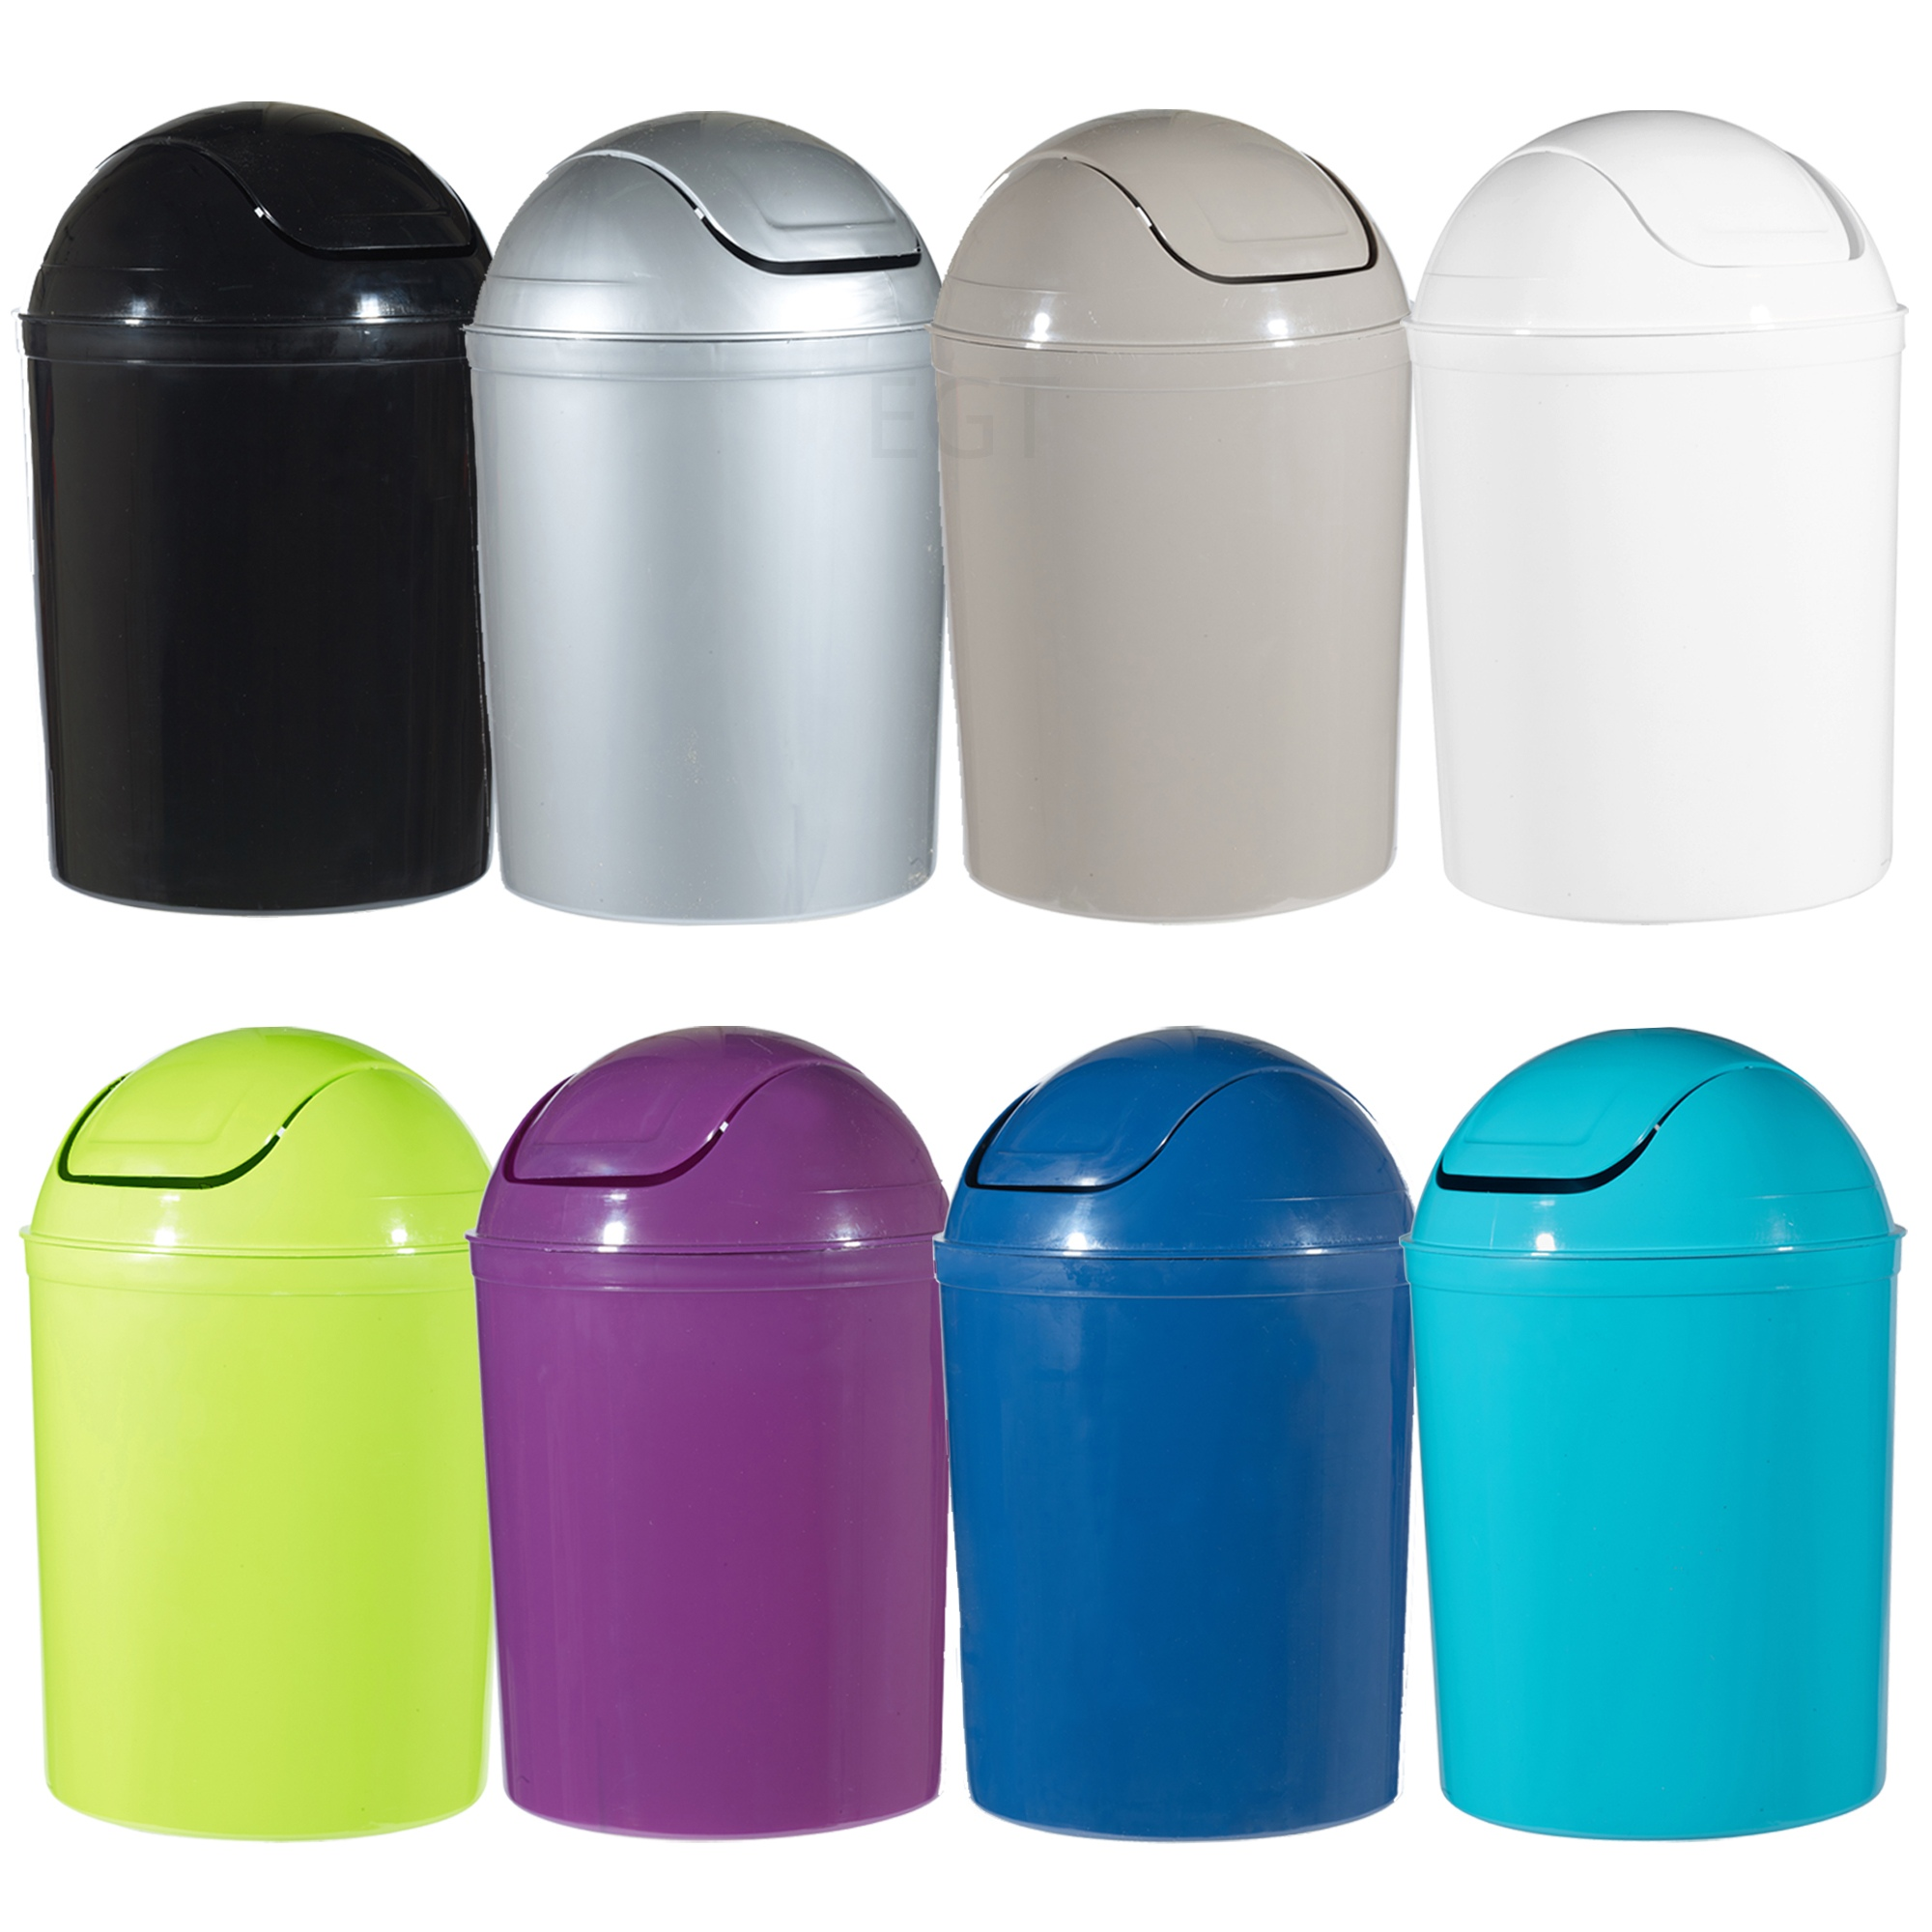 plastic 5 liter swing lid waste dustbin rubbish garbage bin bathroom toilet ebay